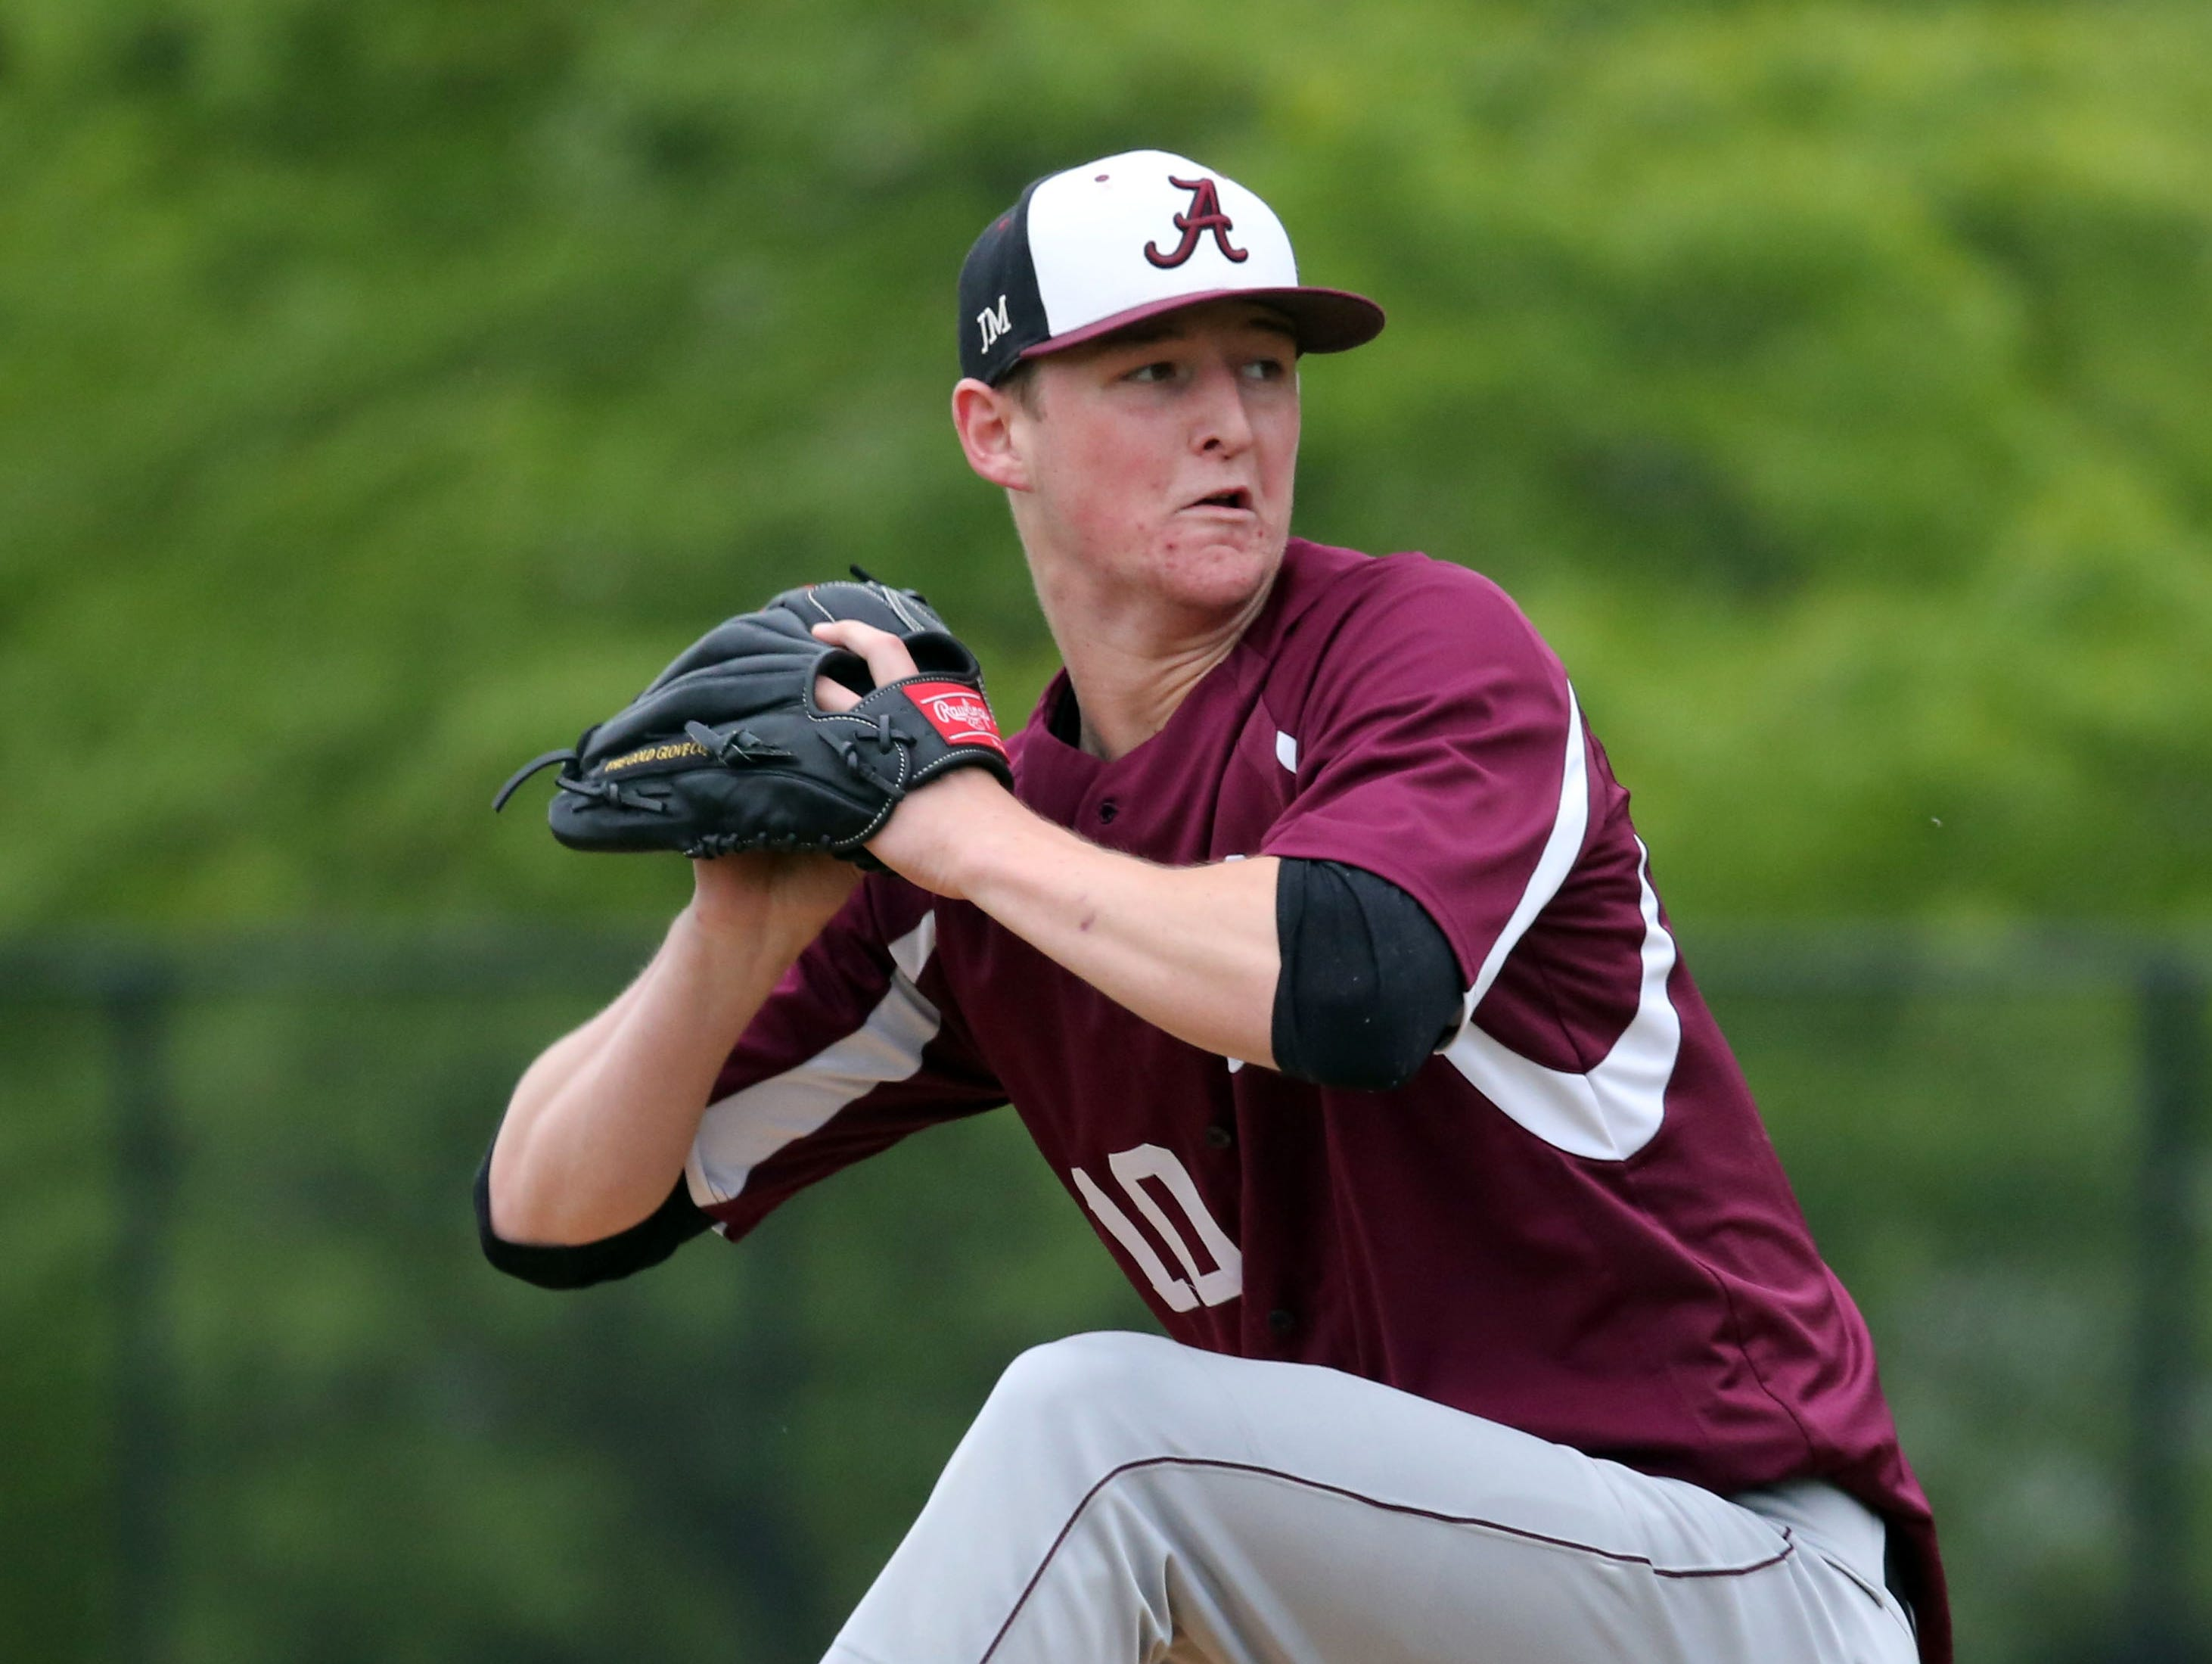 Albertus Magnus pitcher James Reilly delivers a pitch to Ardsley during their Class B game at Ardsley High School, May 21, 2016.